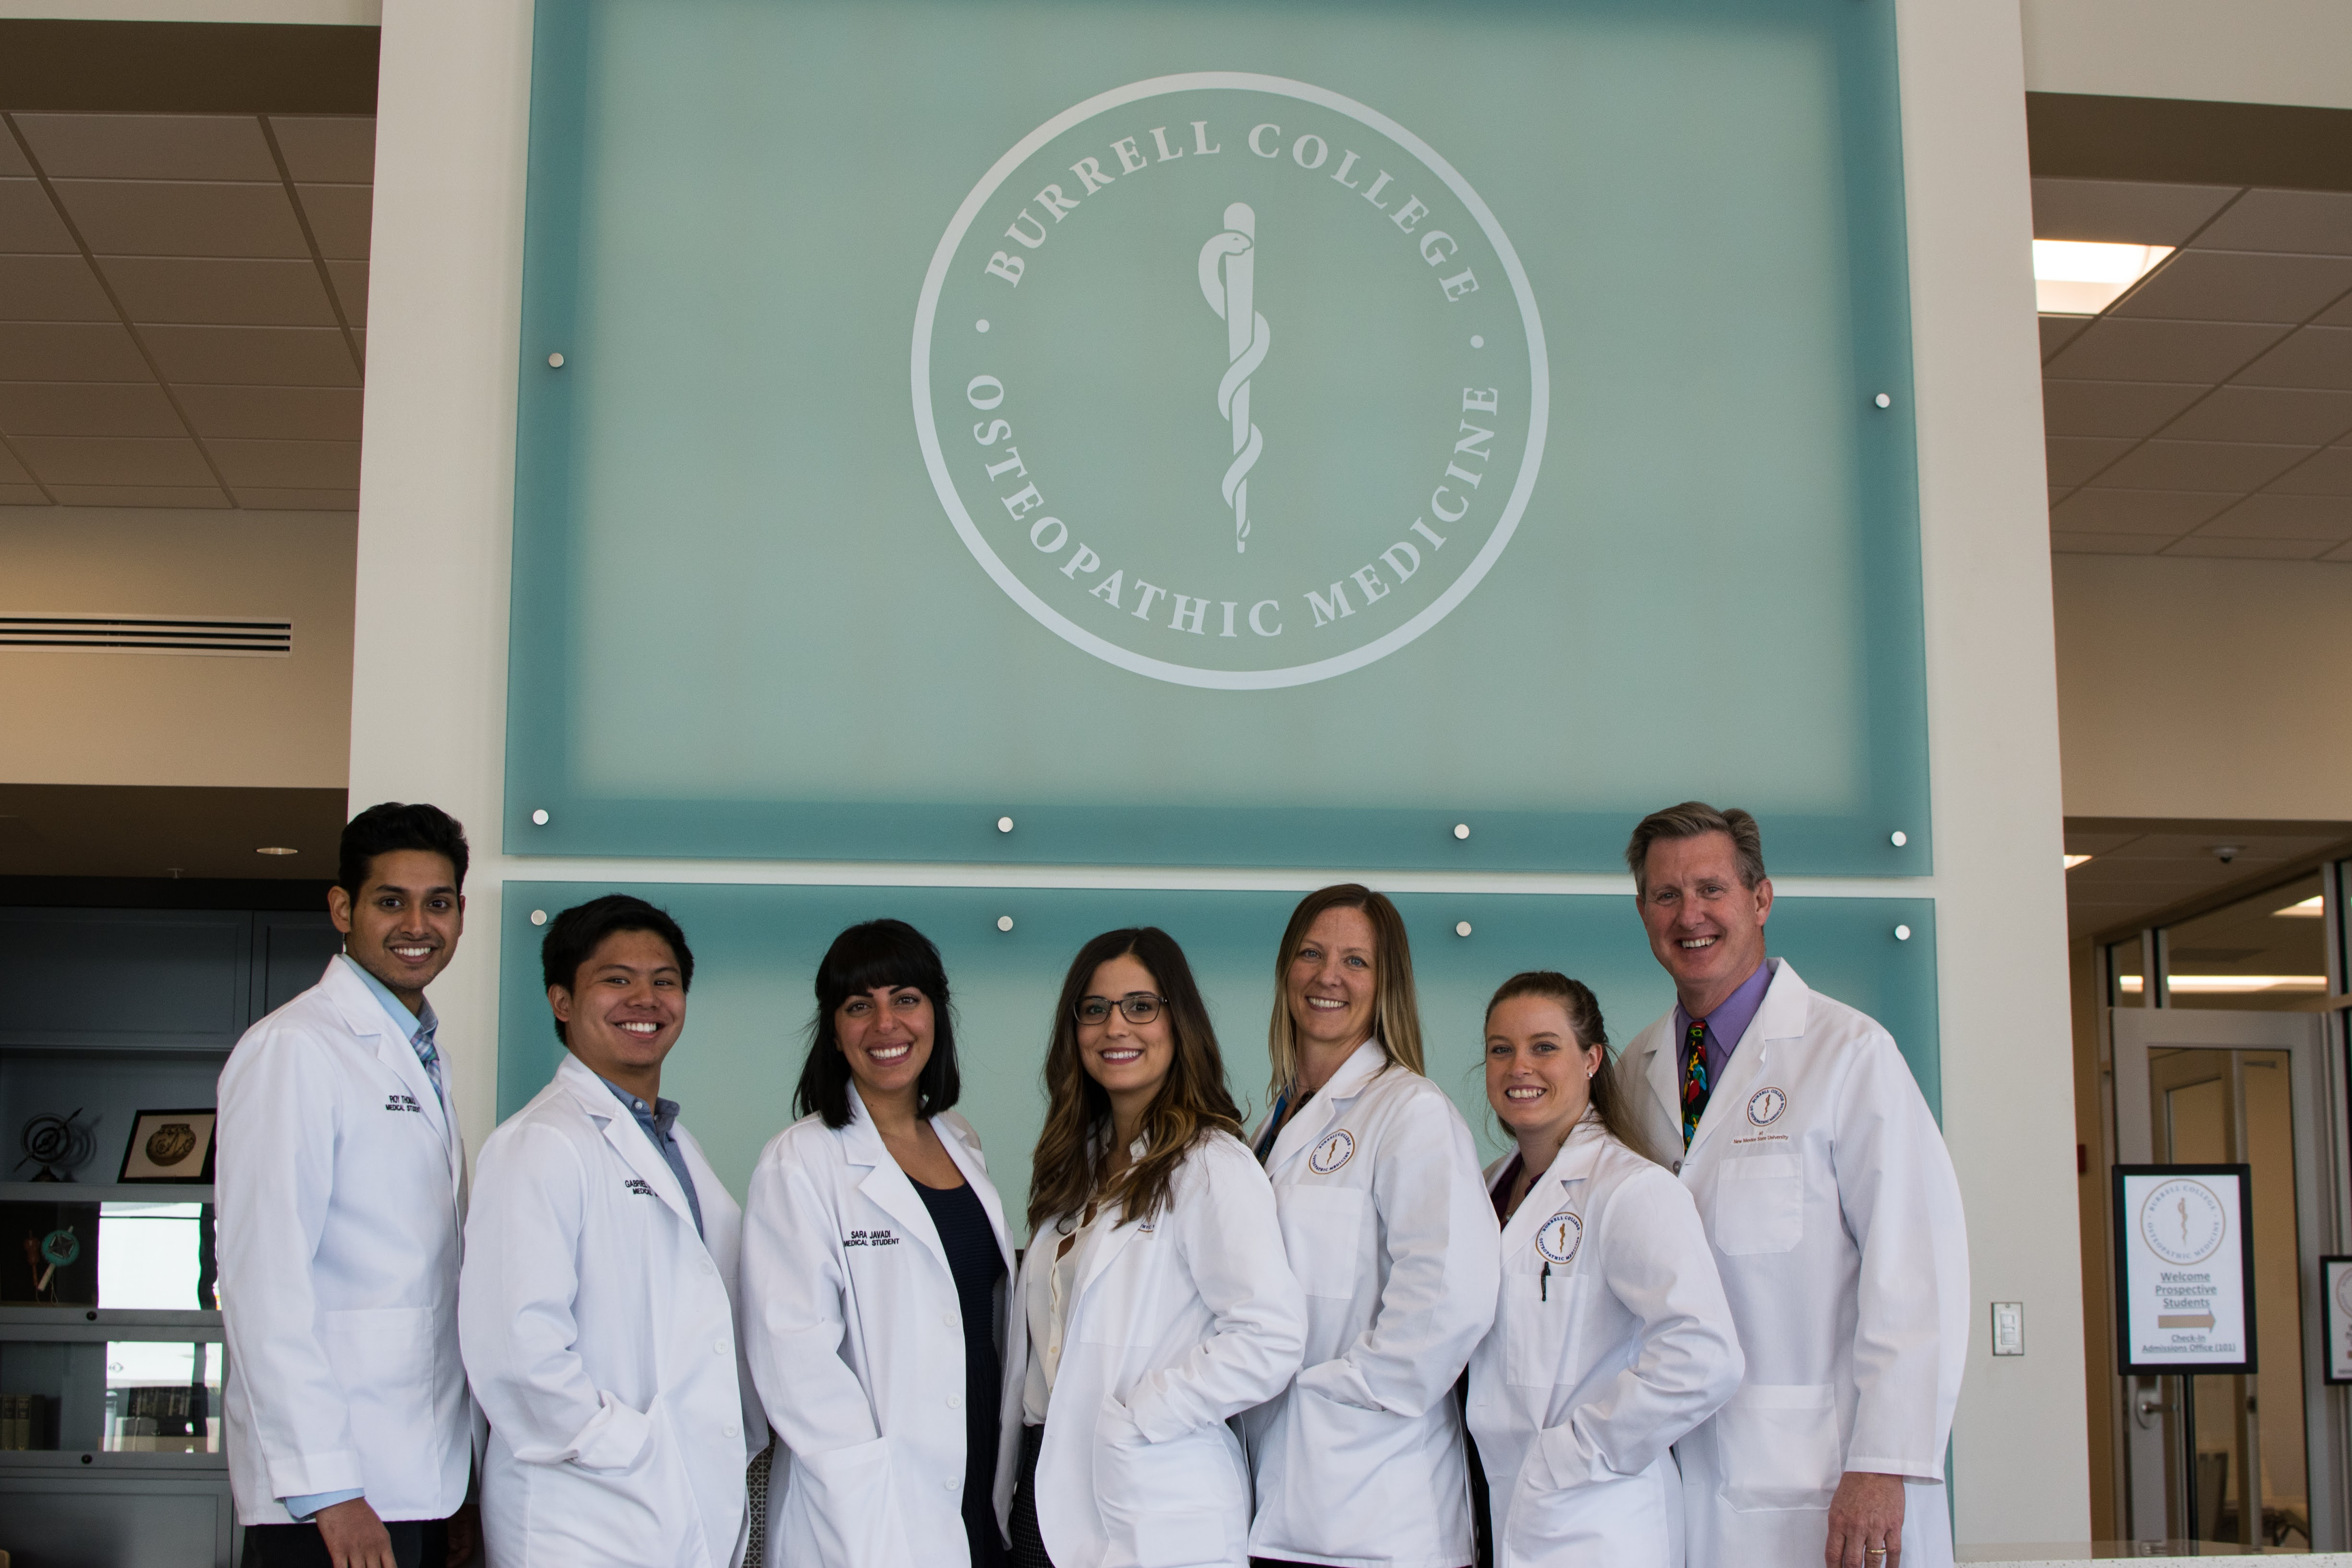 Burrell College of Osteopathic Medicine – B Pediatric Club Named